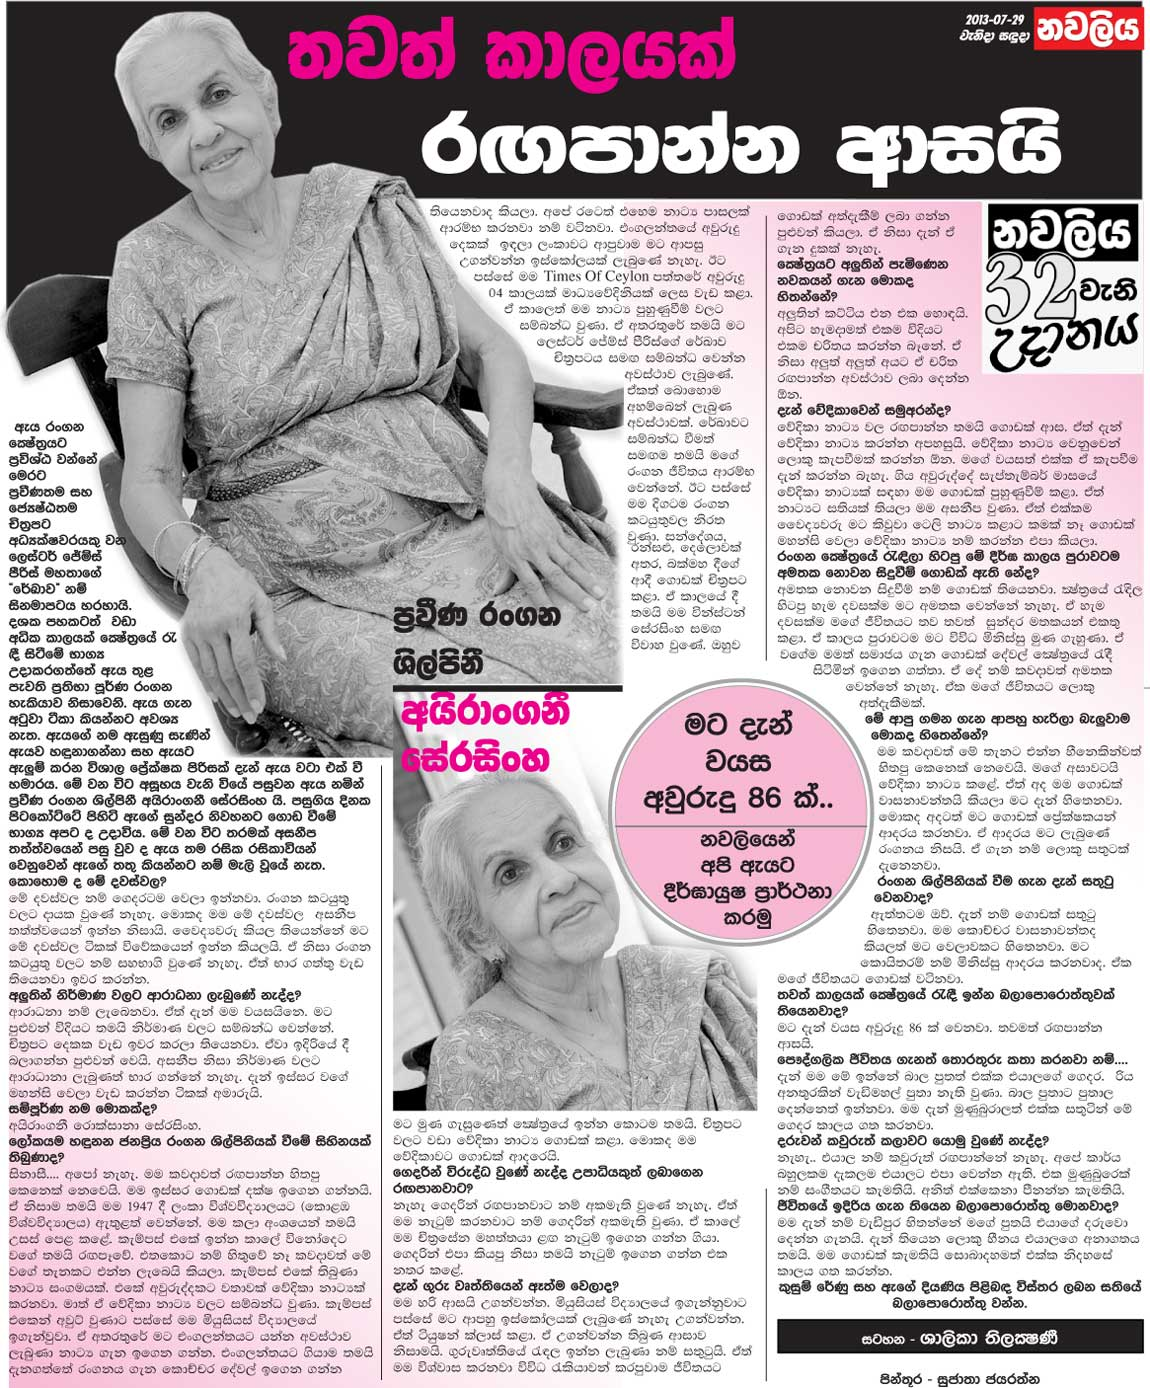 Sri Lanka Newspapers